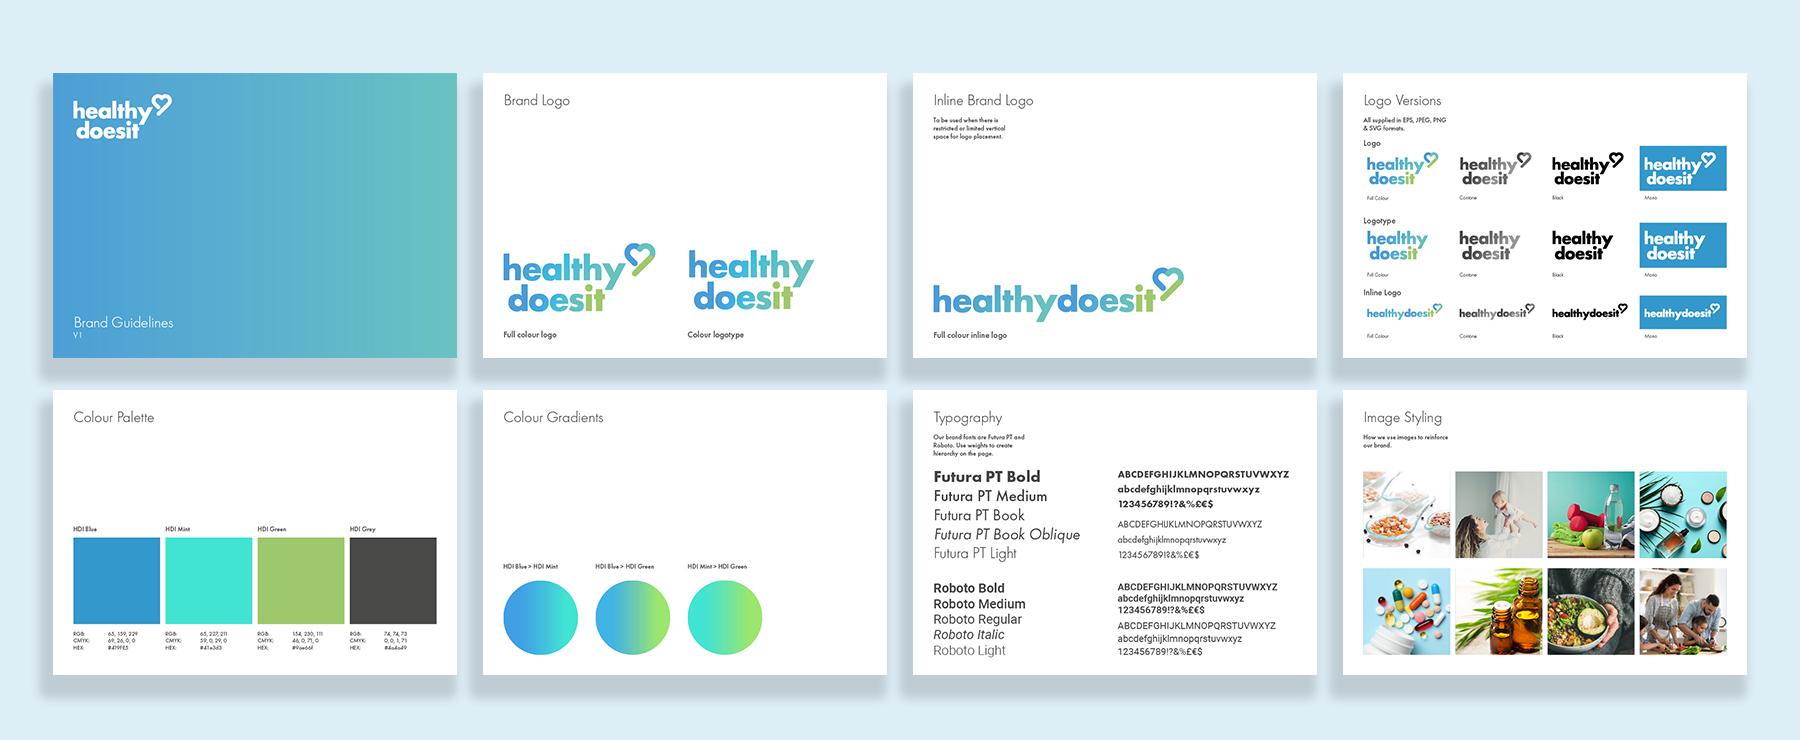 A flat lay of the healthy does it brand guidelines